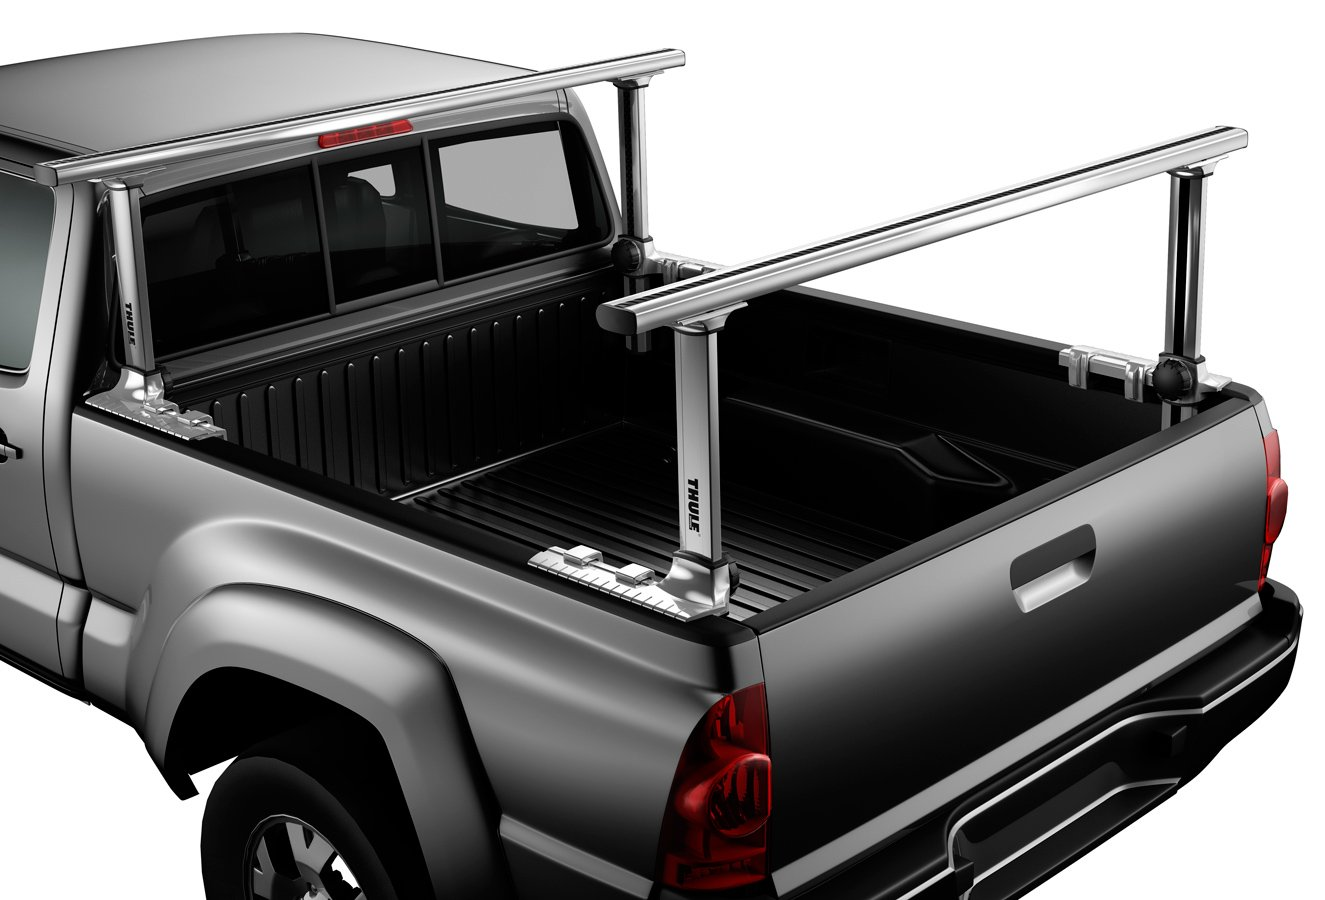 nissan frontier roof rack thule rachael edwards